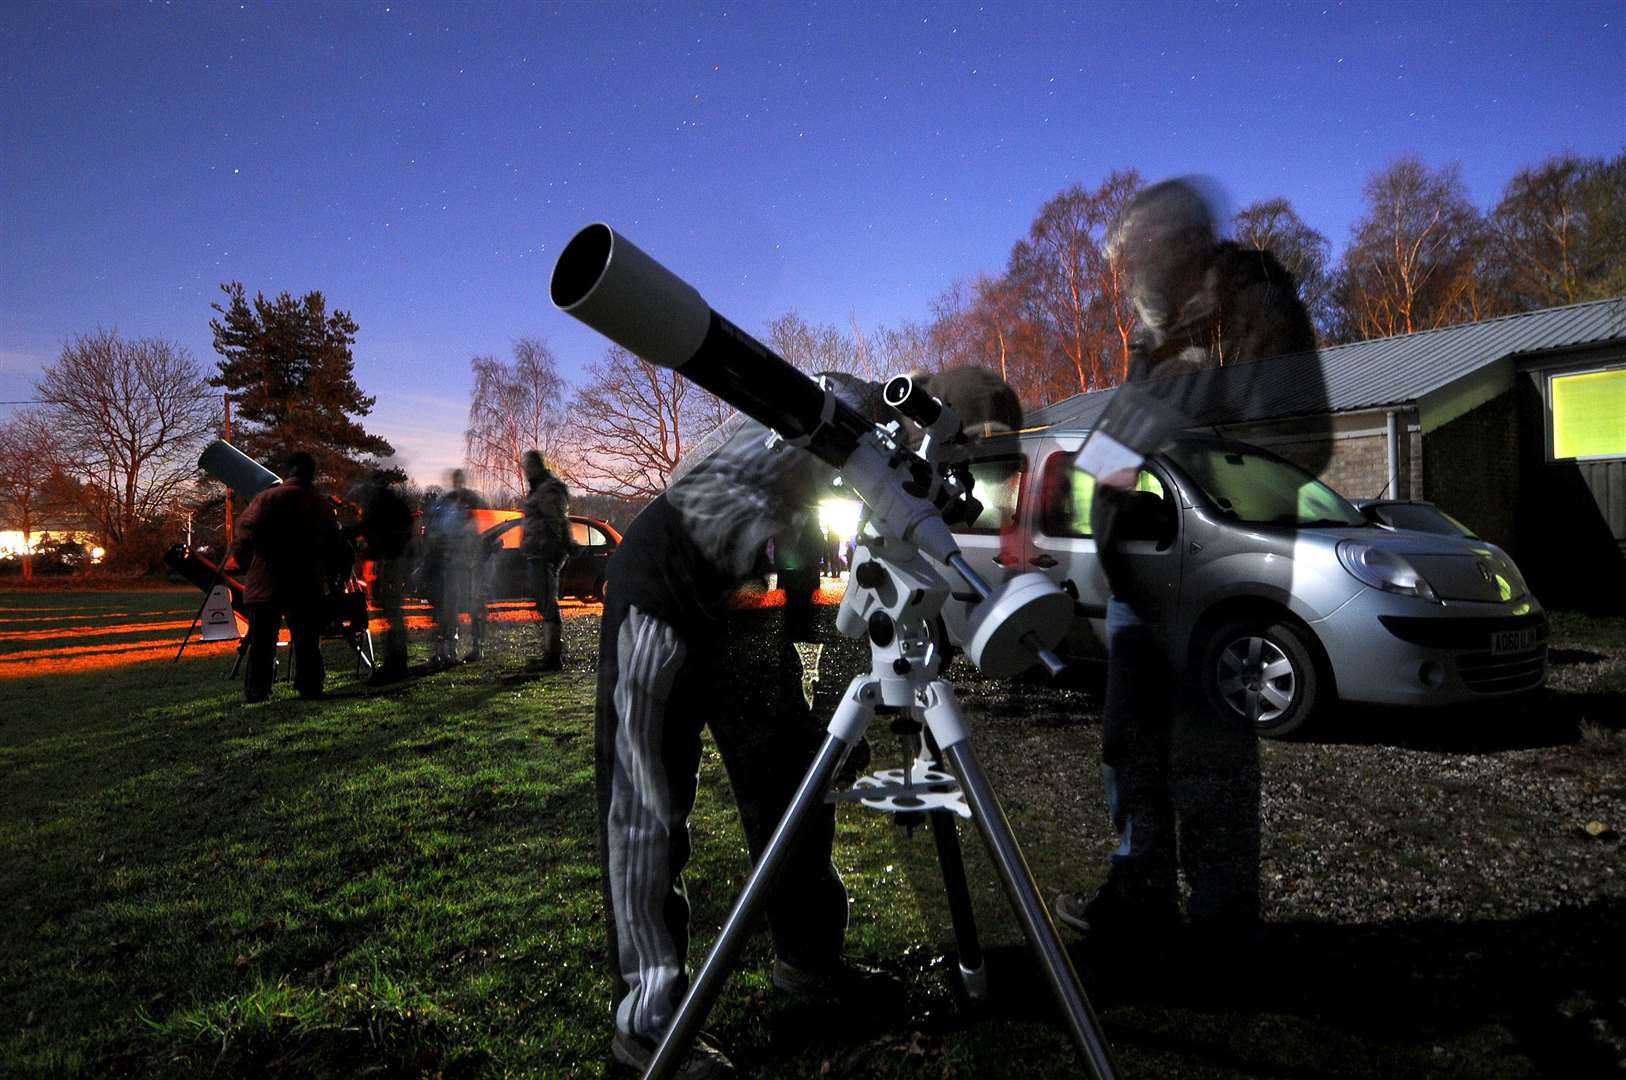 The Leonid meteor shower will shoot fireballs across the sky this week